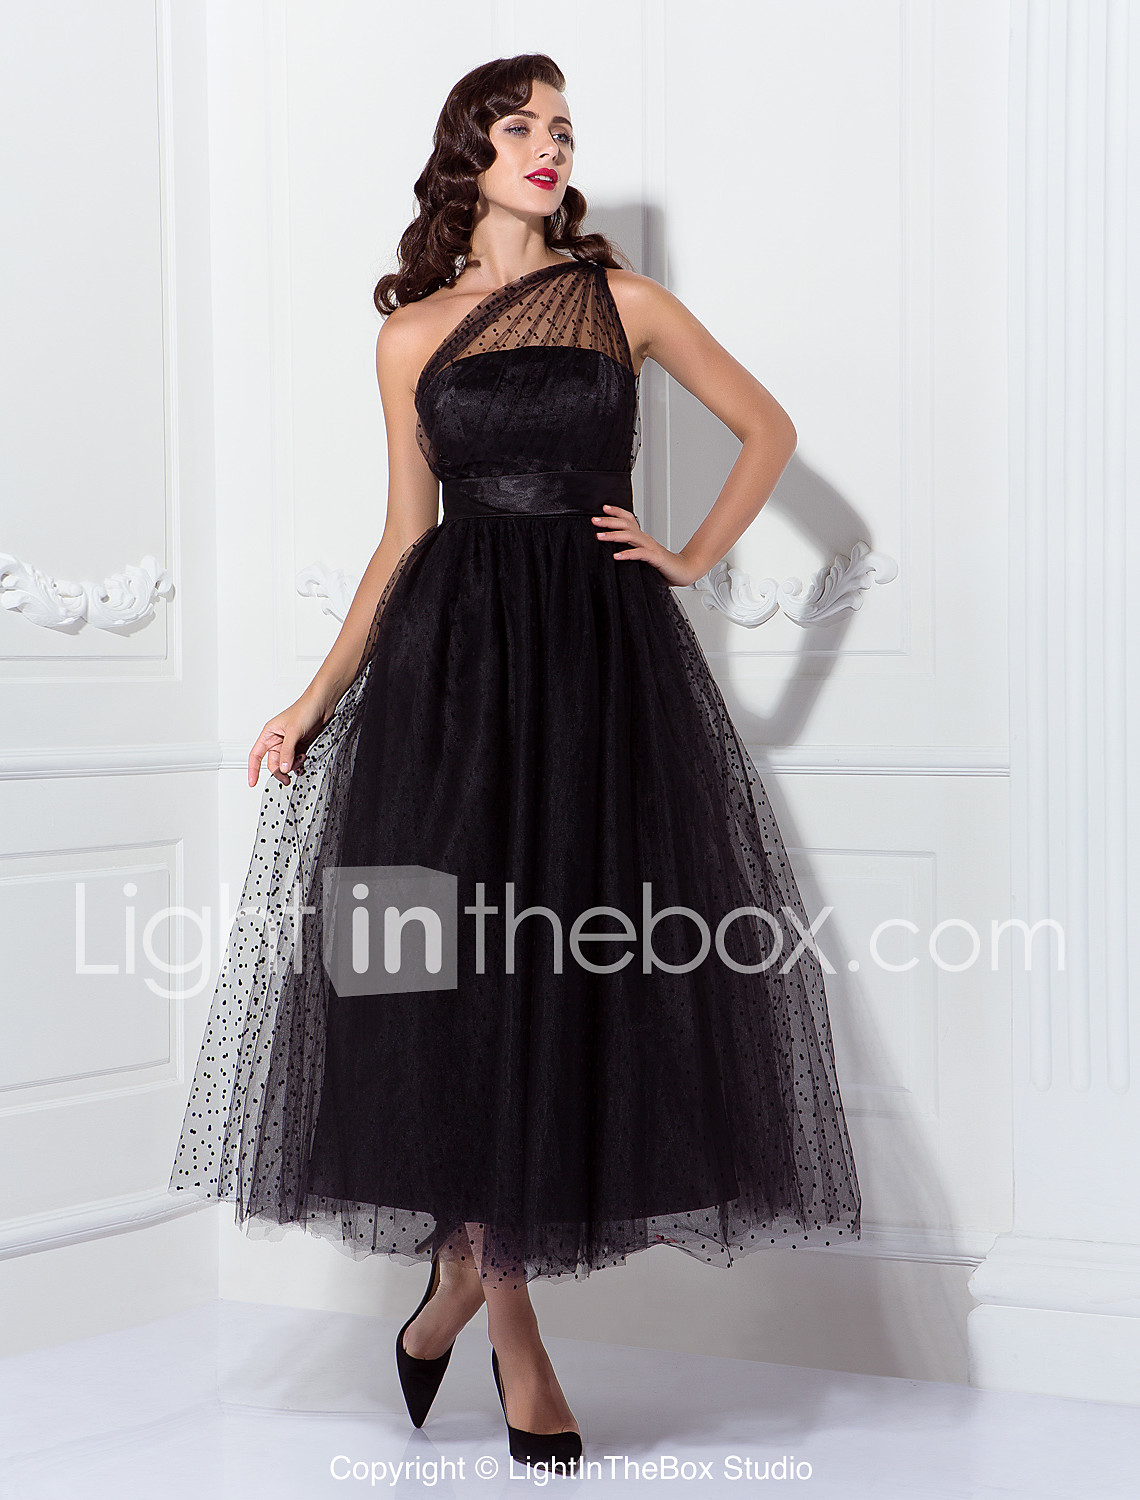 plus size jamaican wedding dresses TS Couture Prom Formal Evening Wedding Party Dress Celebrity Style Vintage Inspired s A